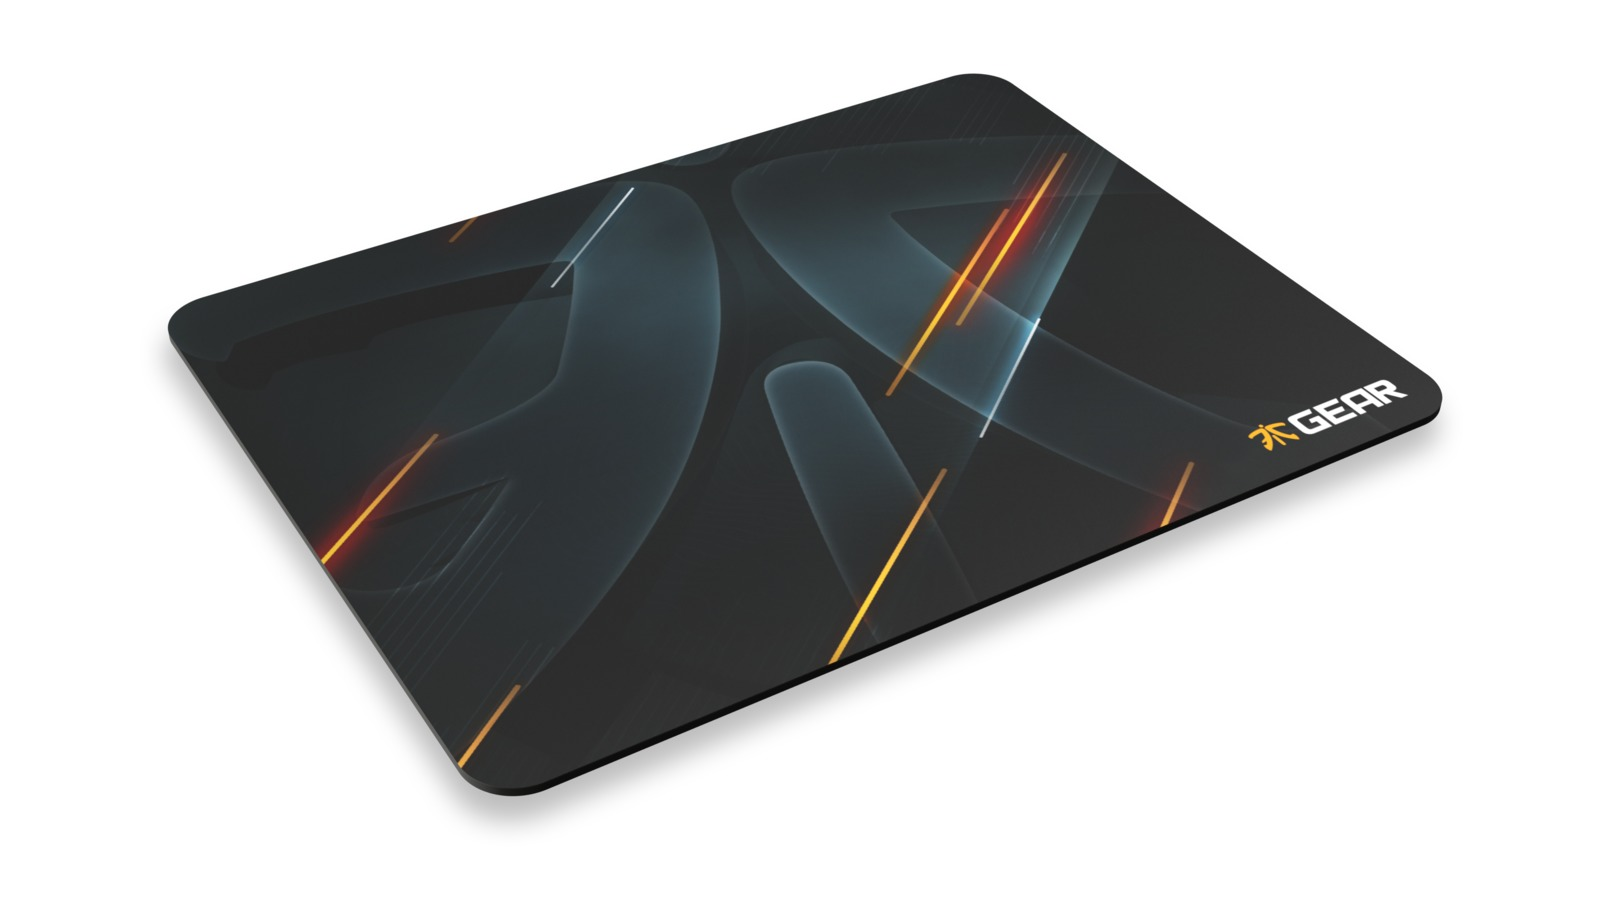 Fnatic Focus Pro Gaming Mousepad - Neon XL for PC Games image